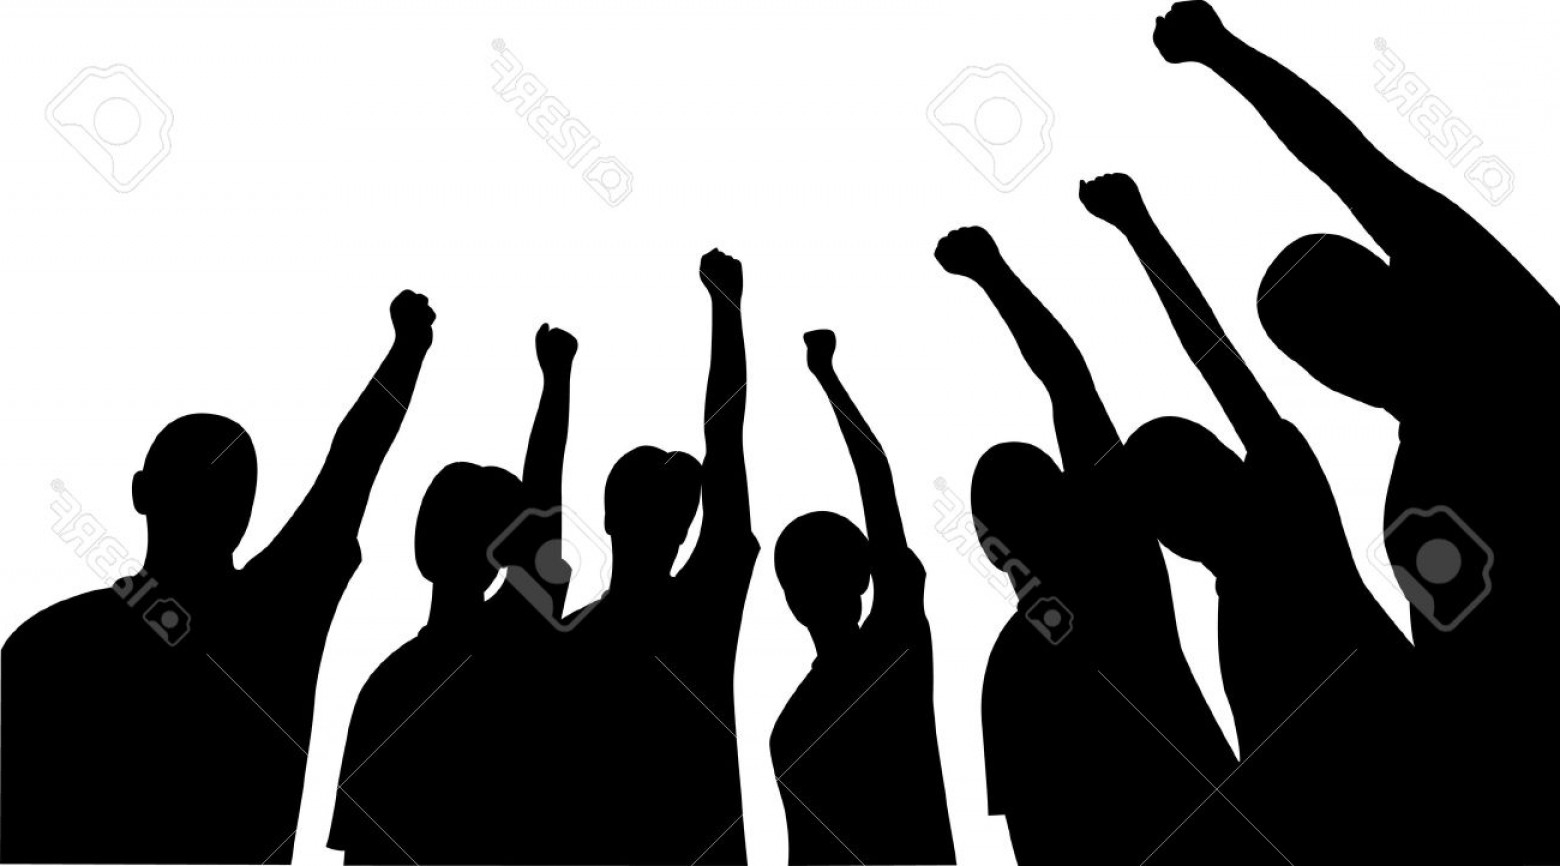 Sillouhette Vector Group: Photogroup Of Friends Upwards Hands Vector